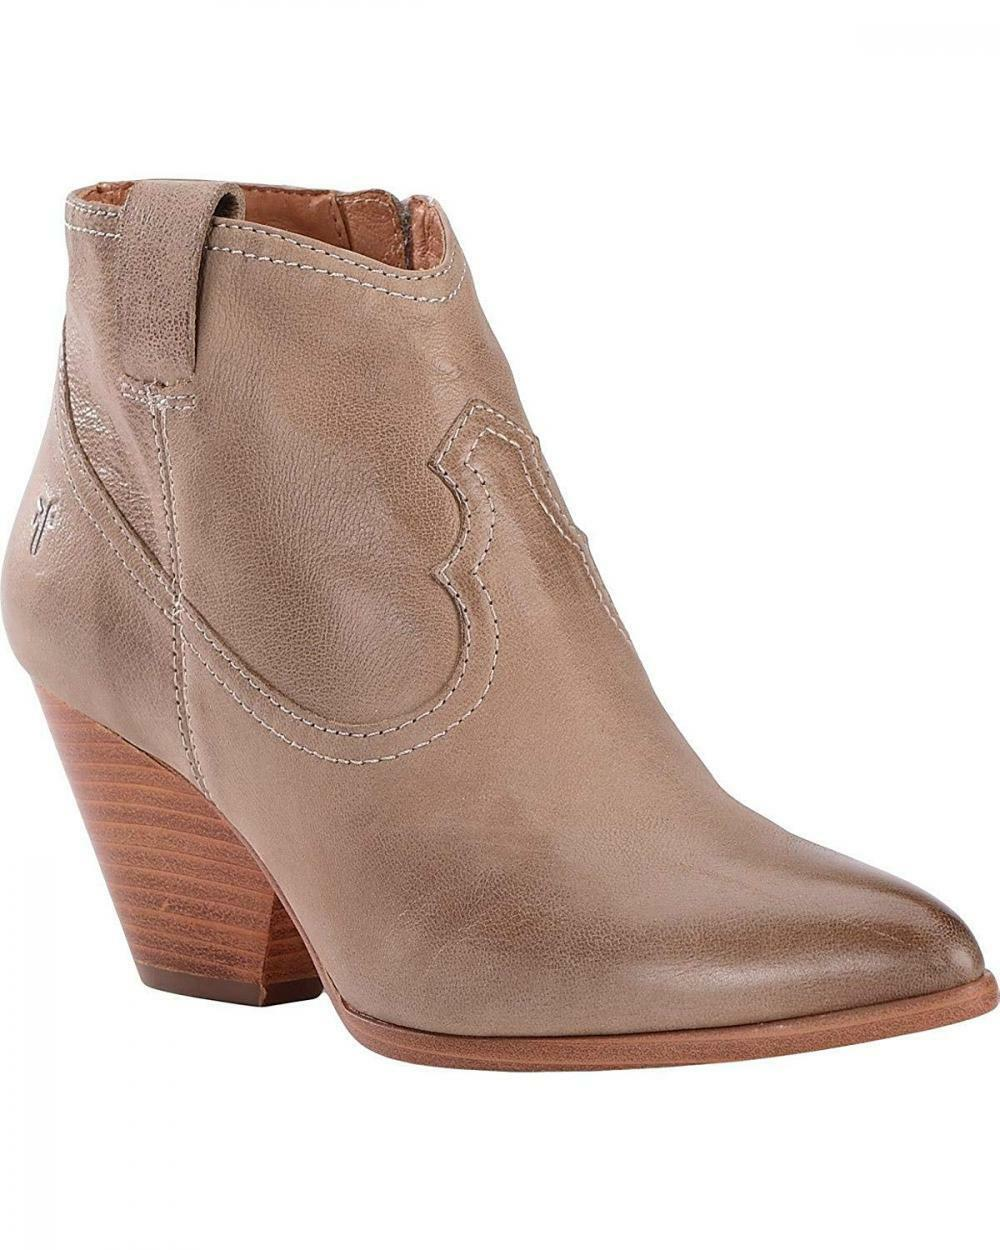 Man's/Woman's FRYE Womens Reina Bootie Special purchase Moderate cost General product